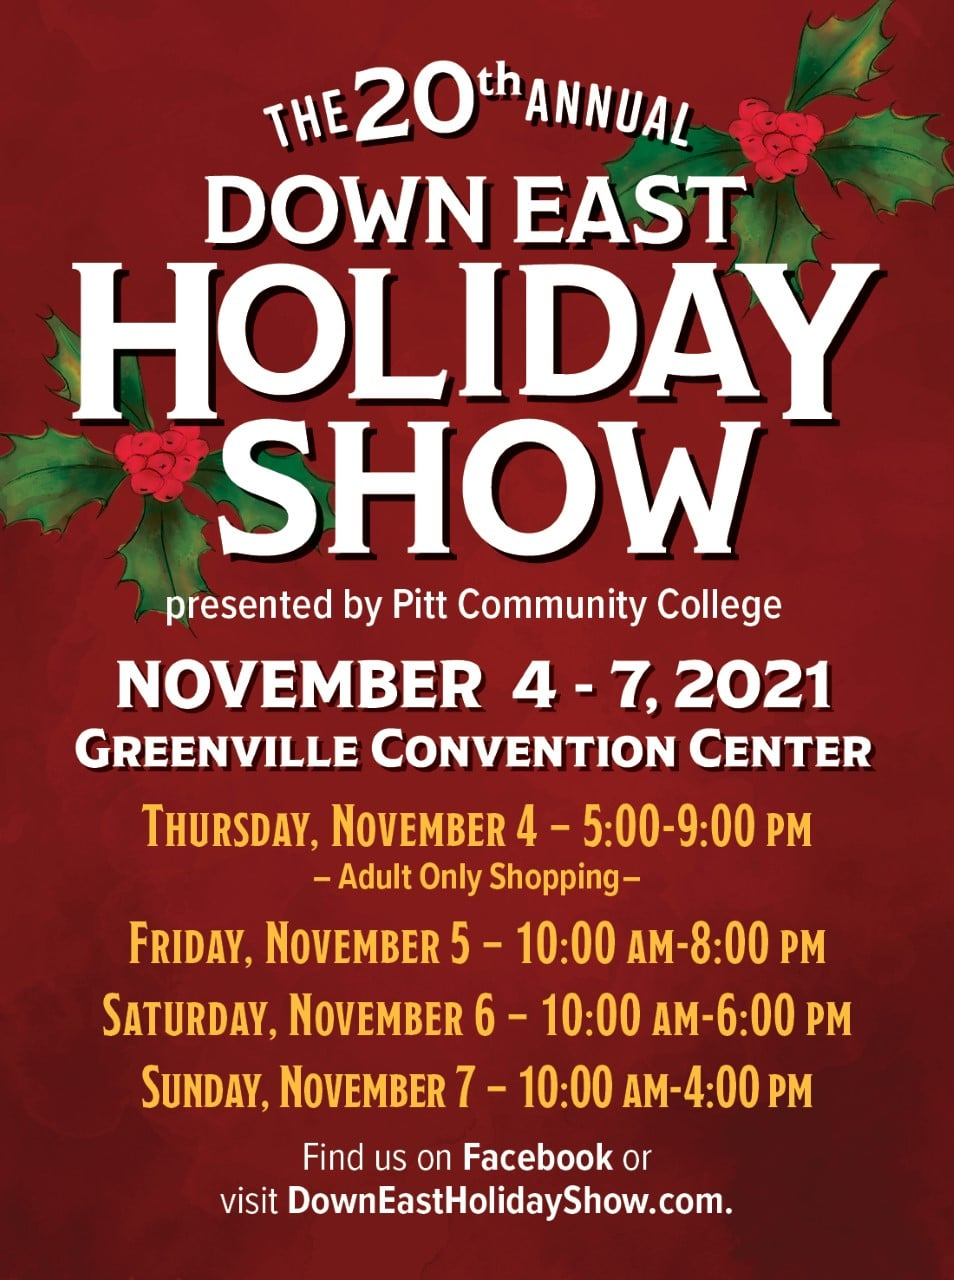 Down East Holiday Show @ Greenville Convention Center